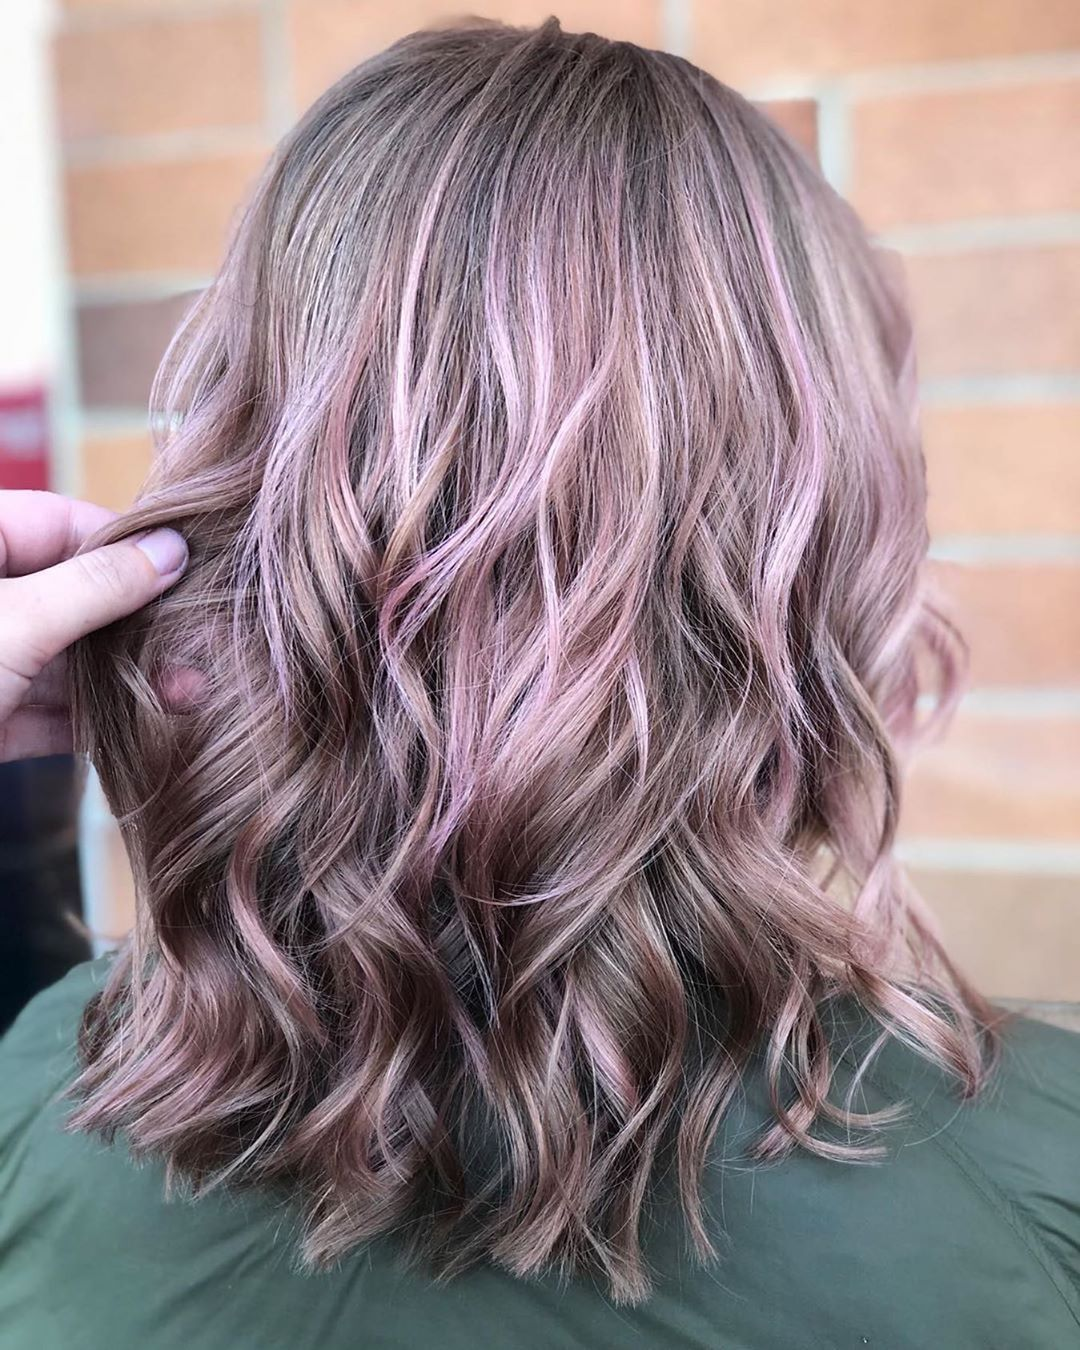 10 Shoulder Length Thick Hair Color Creations Lob Hairstyle 2021 Thick Hair Styles Professional Hair Color Lob Hairstyle